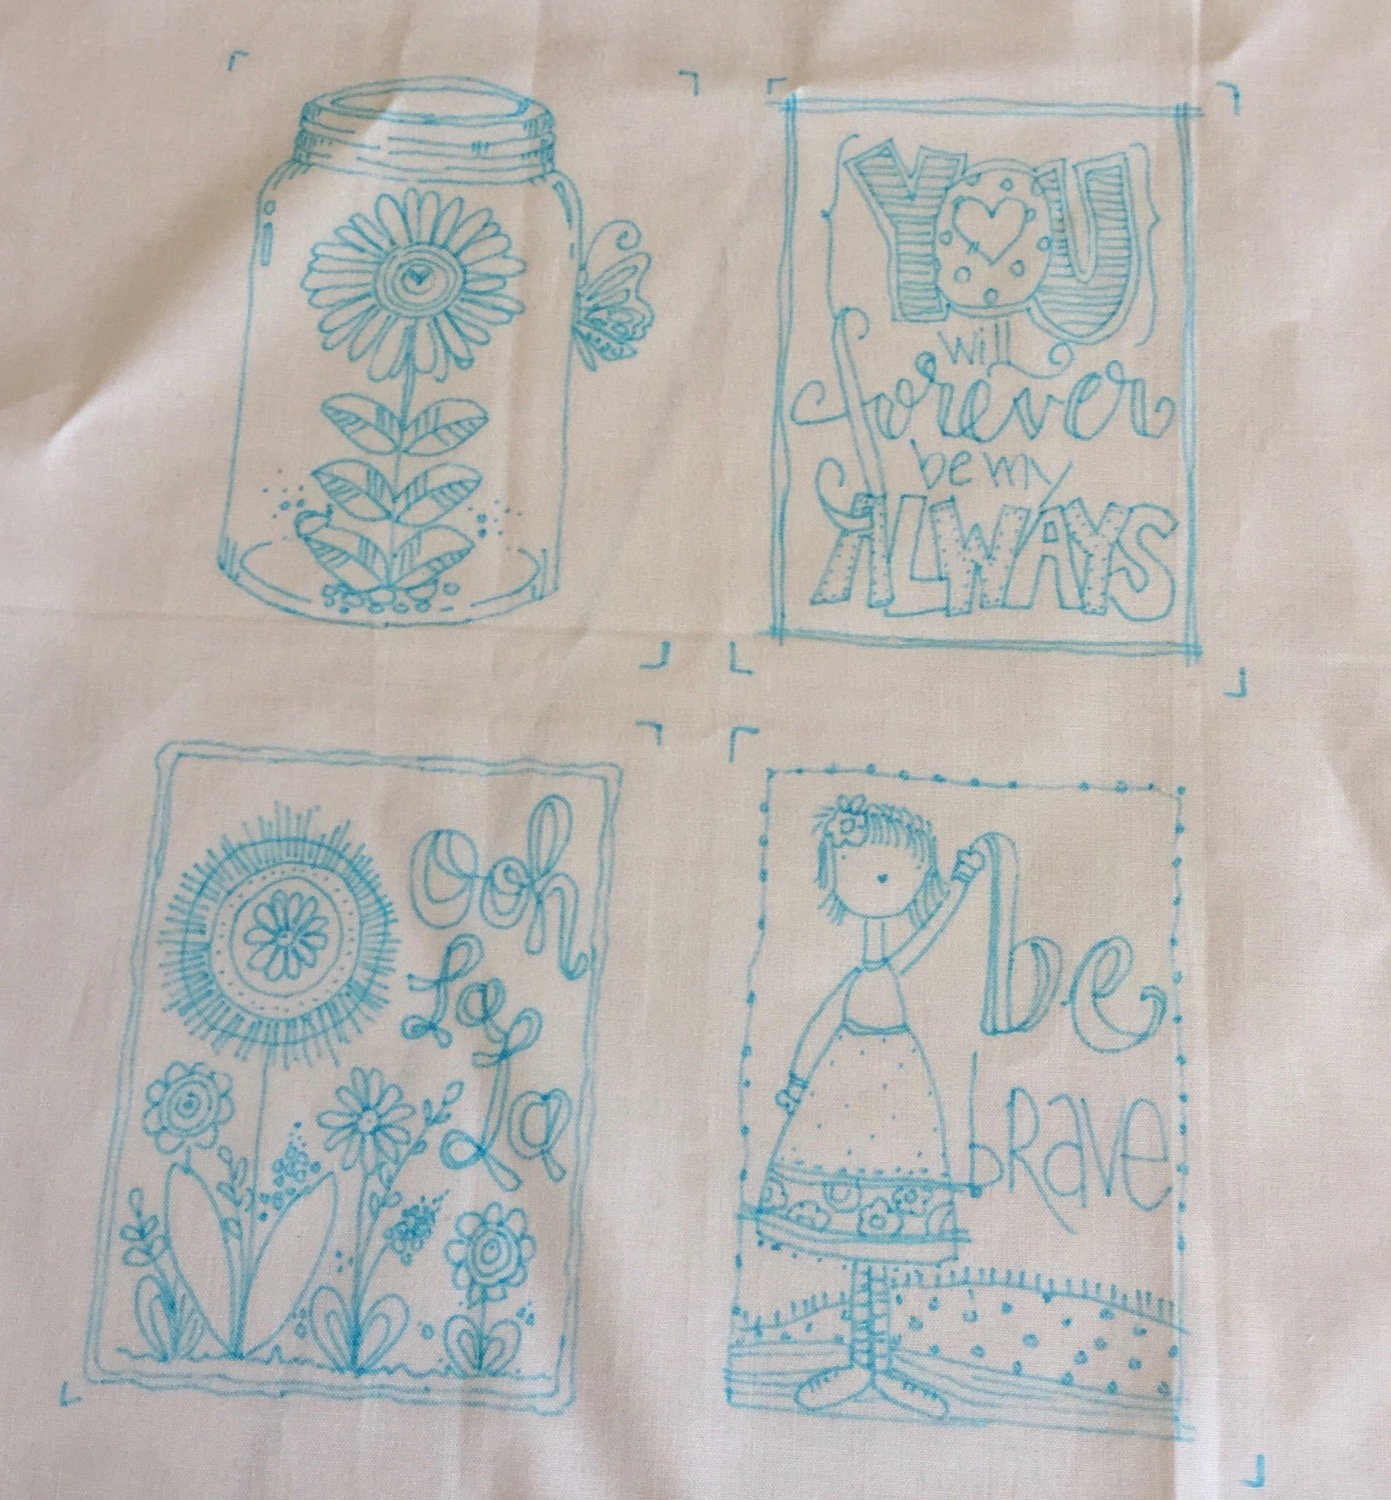 4 separate colouring sheets, combined to make one new embroidery pattern! Ignore the little L shapes, they are just markers. I had to leave part way through tracing and I was afraid if I left the images taped to the window they would get faded...